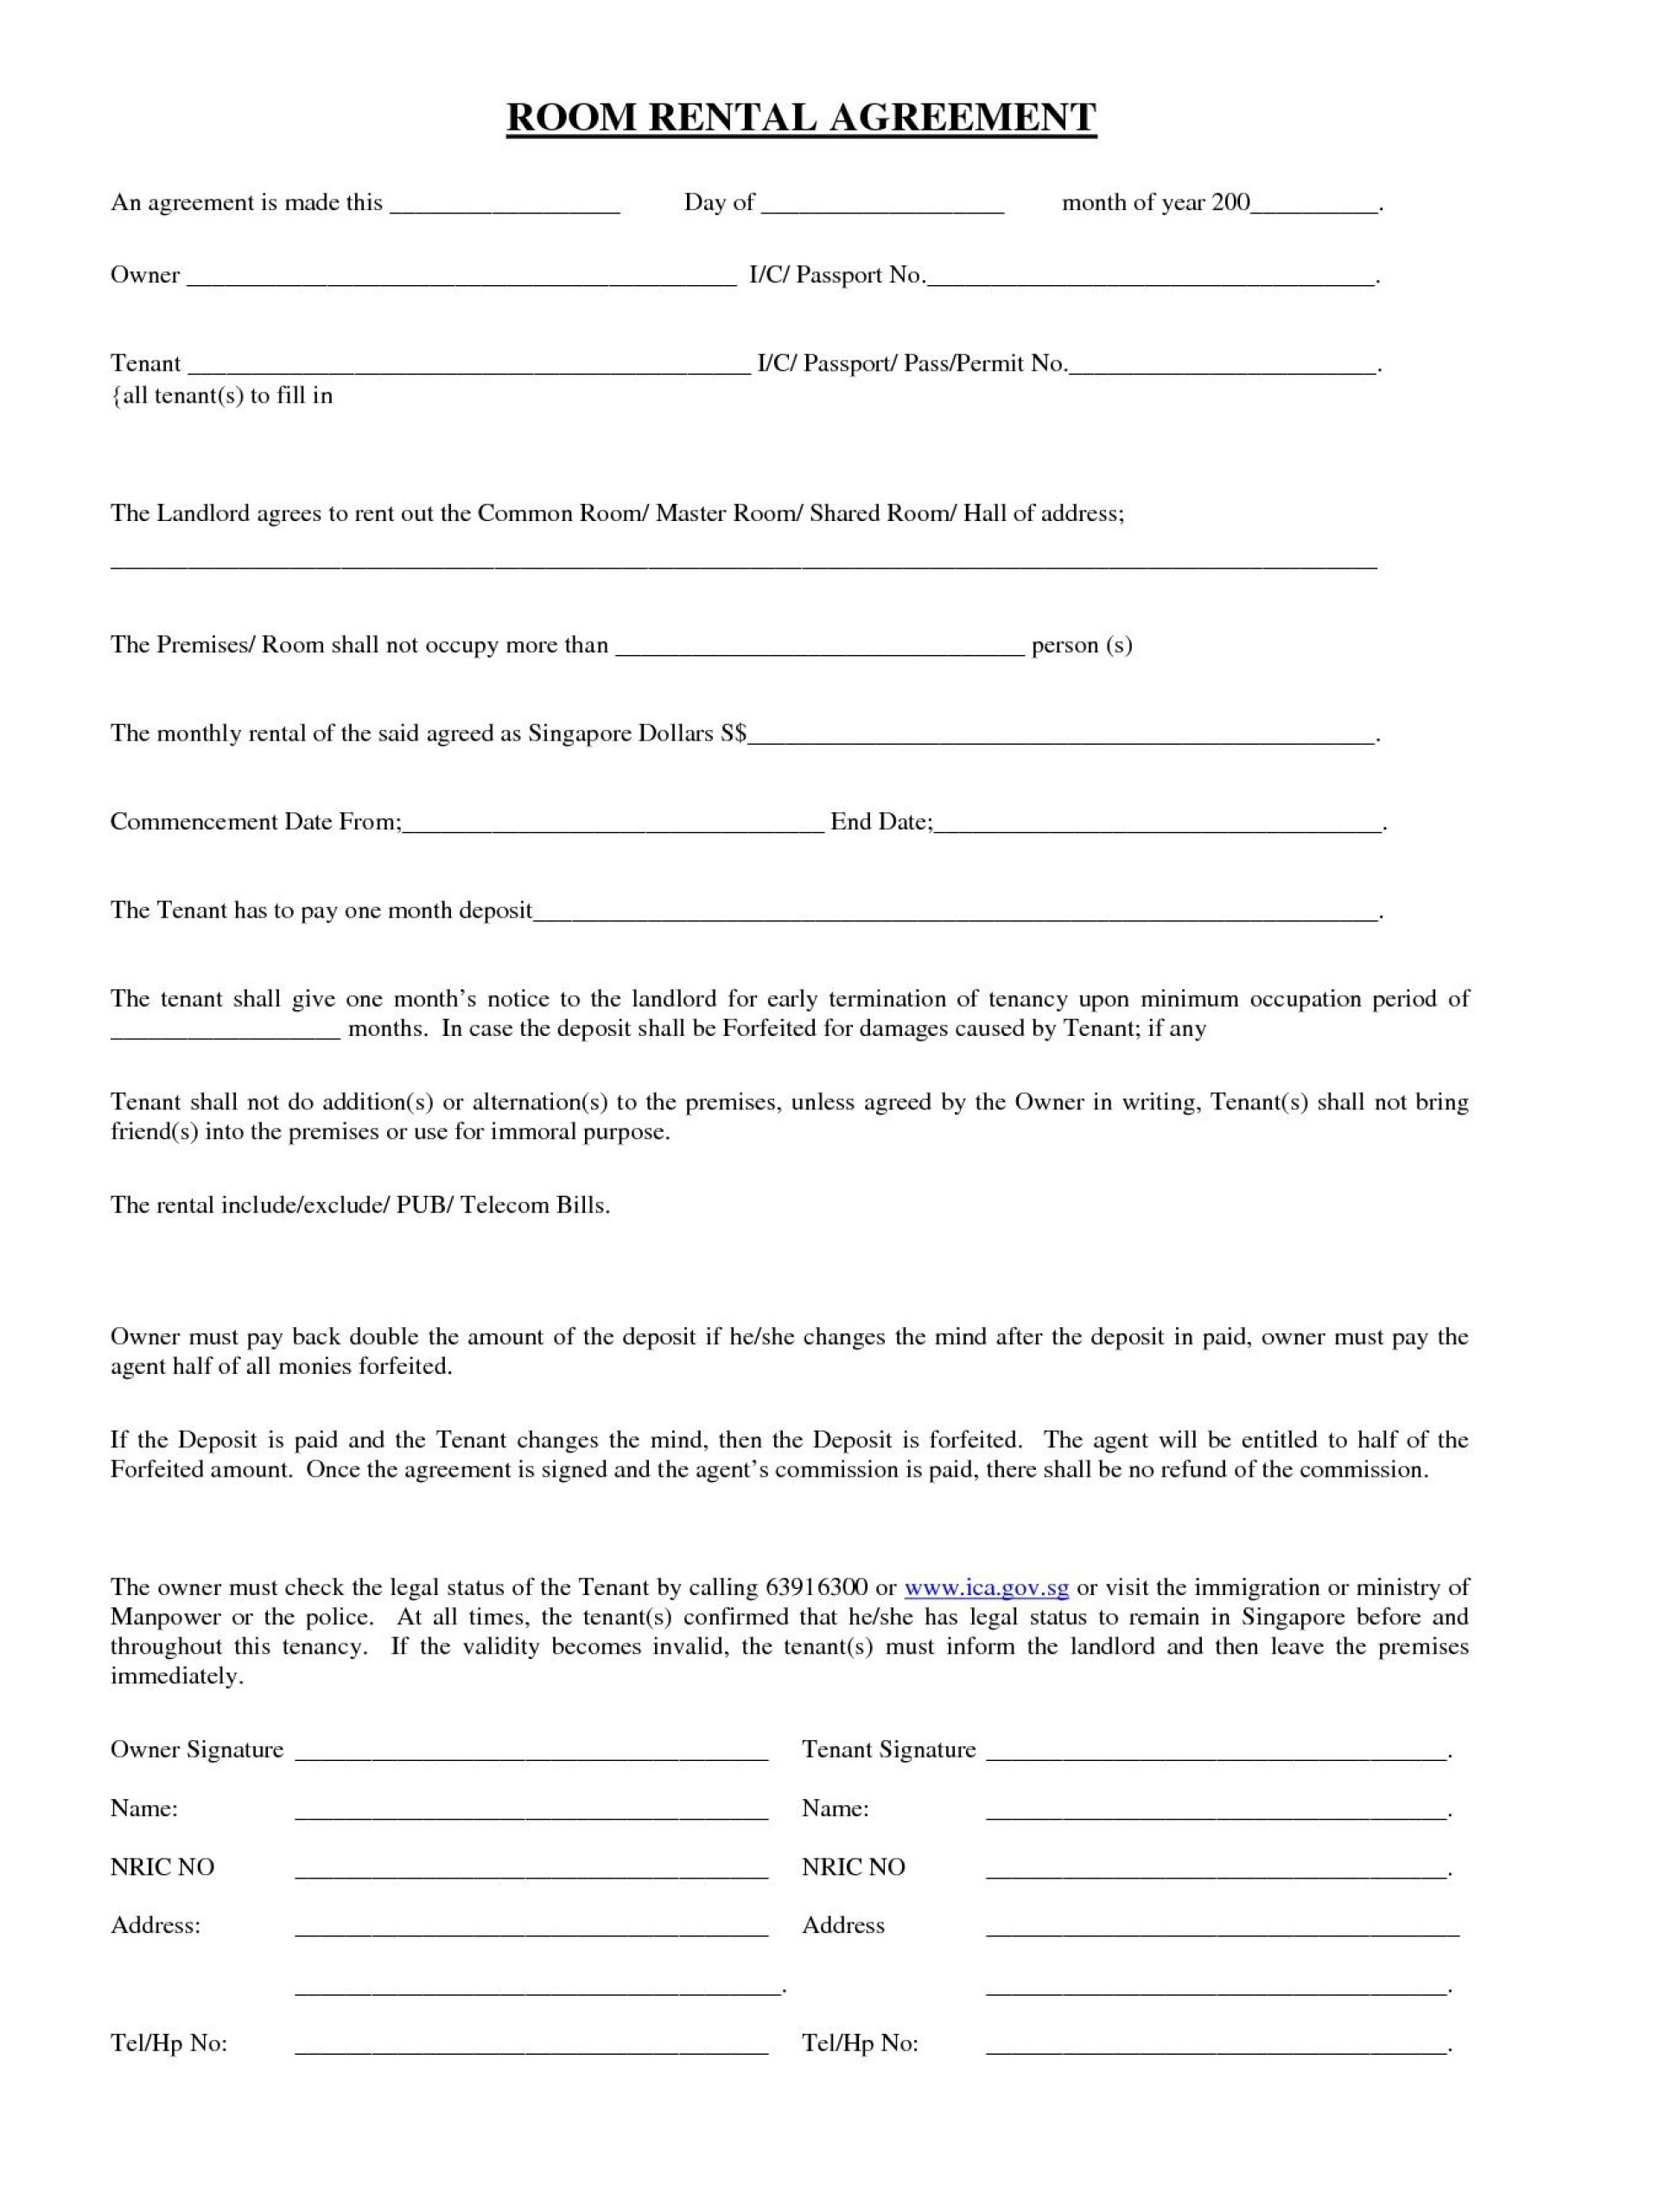 008 Exceptional Room Rental Agreement Template Uk Free High Def  Word Doc1920